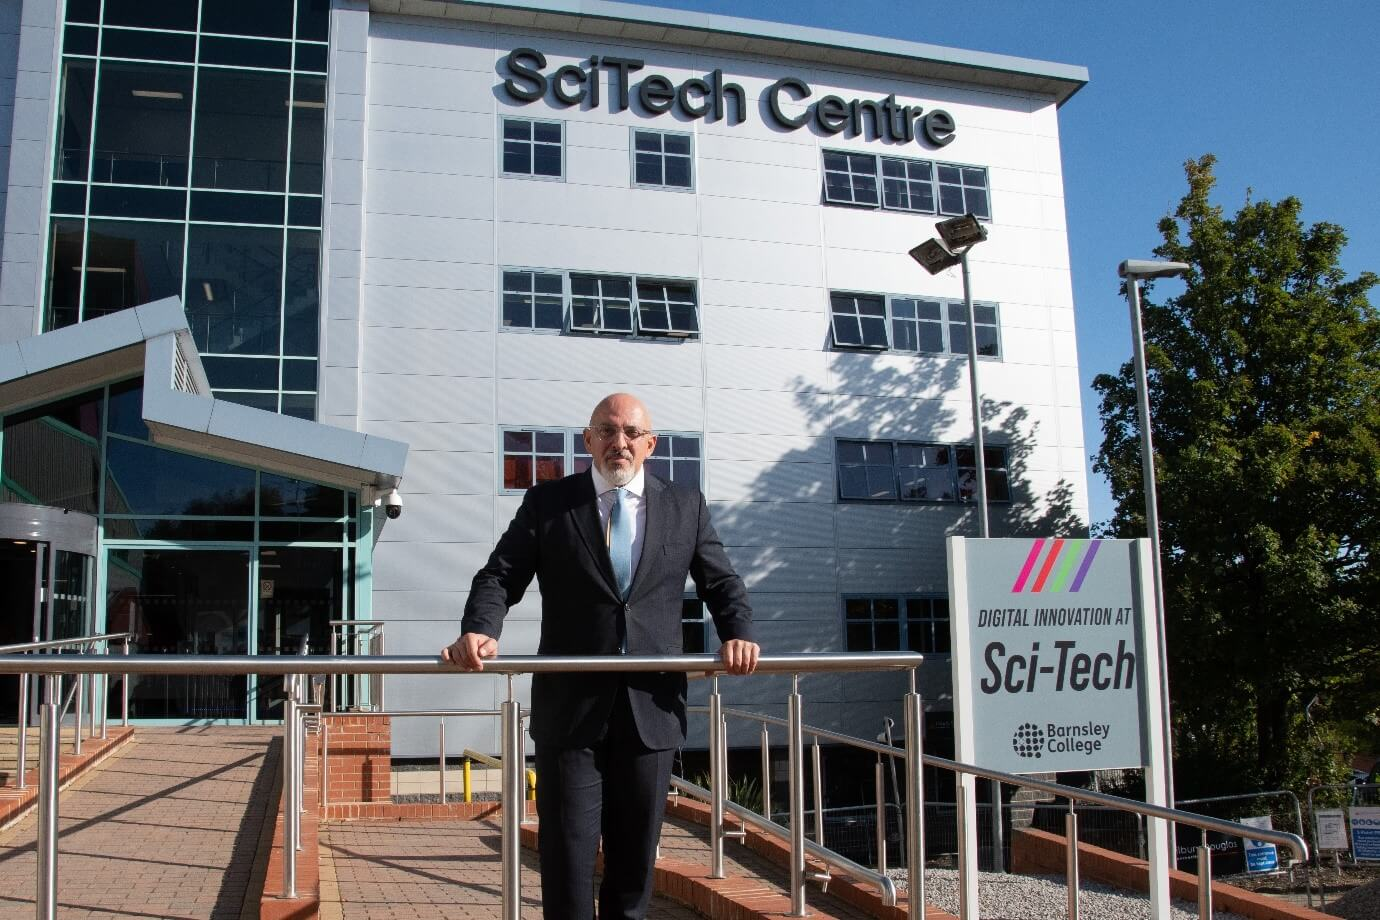 Secretary of State for Education The Rt Hon Nadhim Zahawi MP, officially opens £7 million redevelopment of the SciTech Digital Innovation Hub.